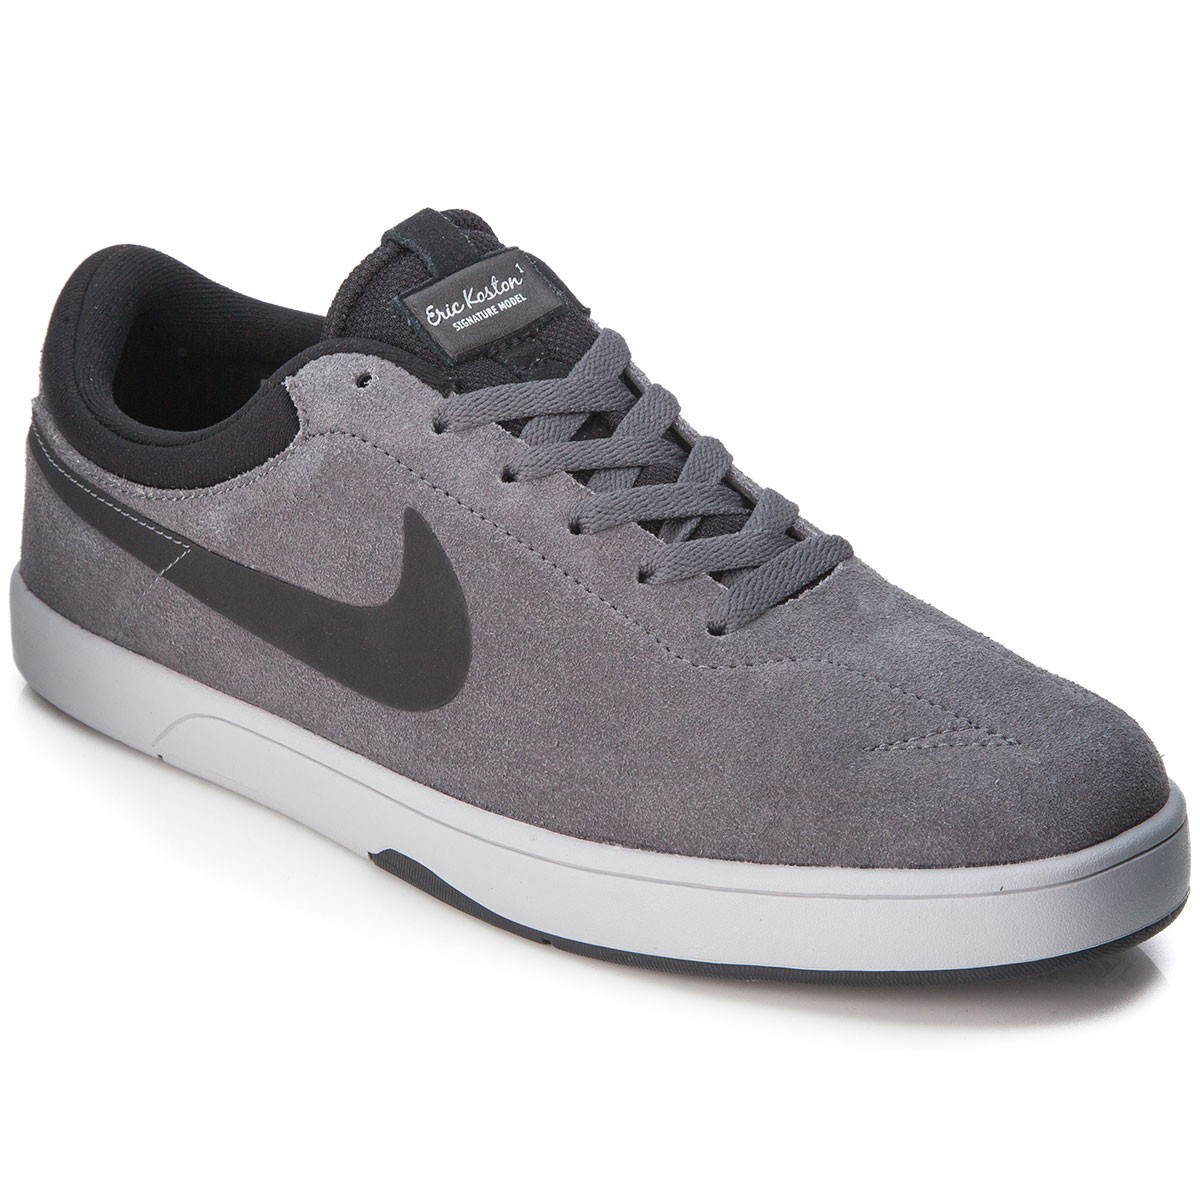 nike zoom eric koston shoes. Black Bedroom Furniture Sets. Home Design Ideas